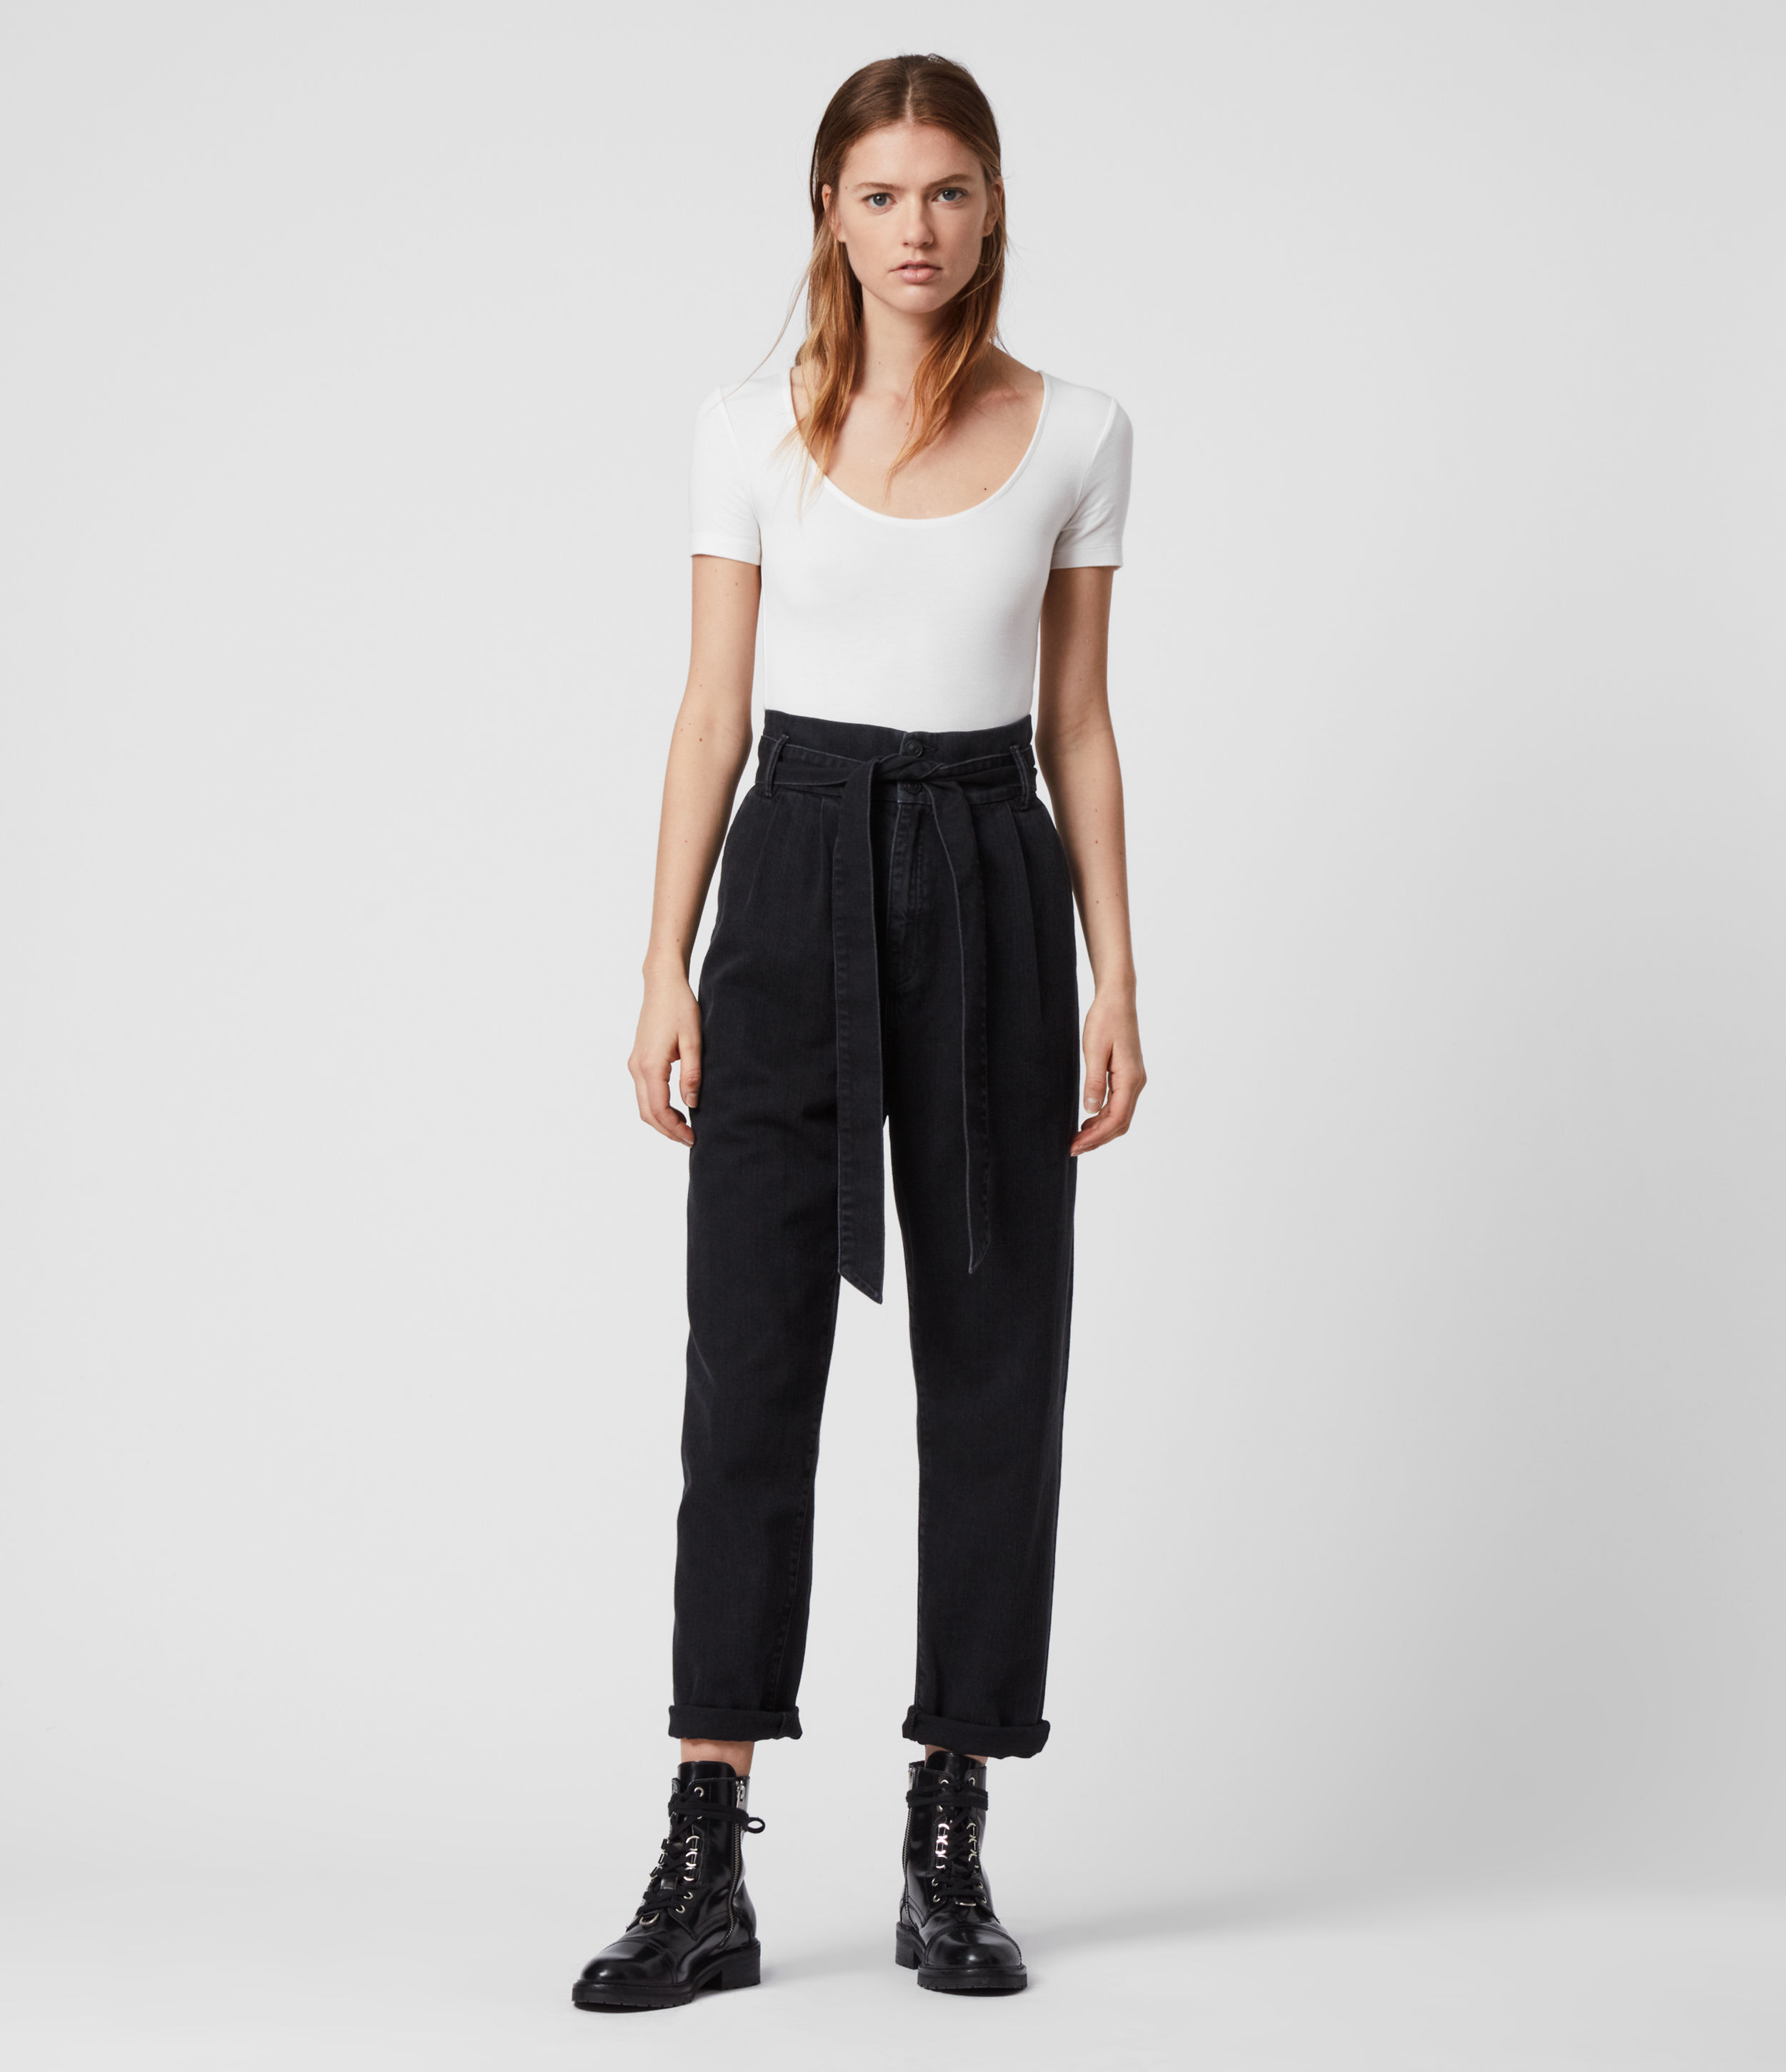 AllSaints Women's Cotton Relaxed Fit Ralita High-Rise Cropped Jeans, Black, Size: 12